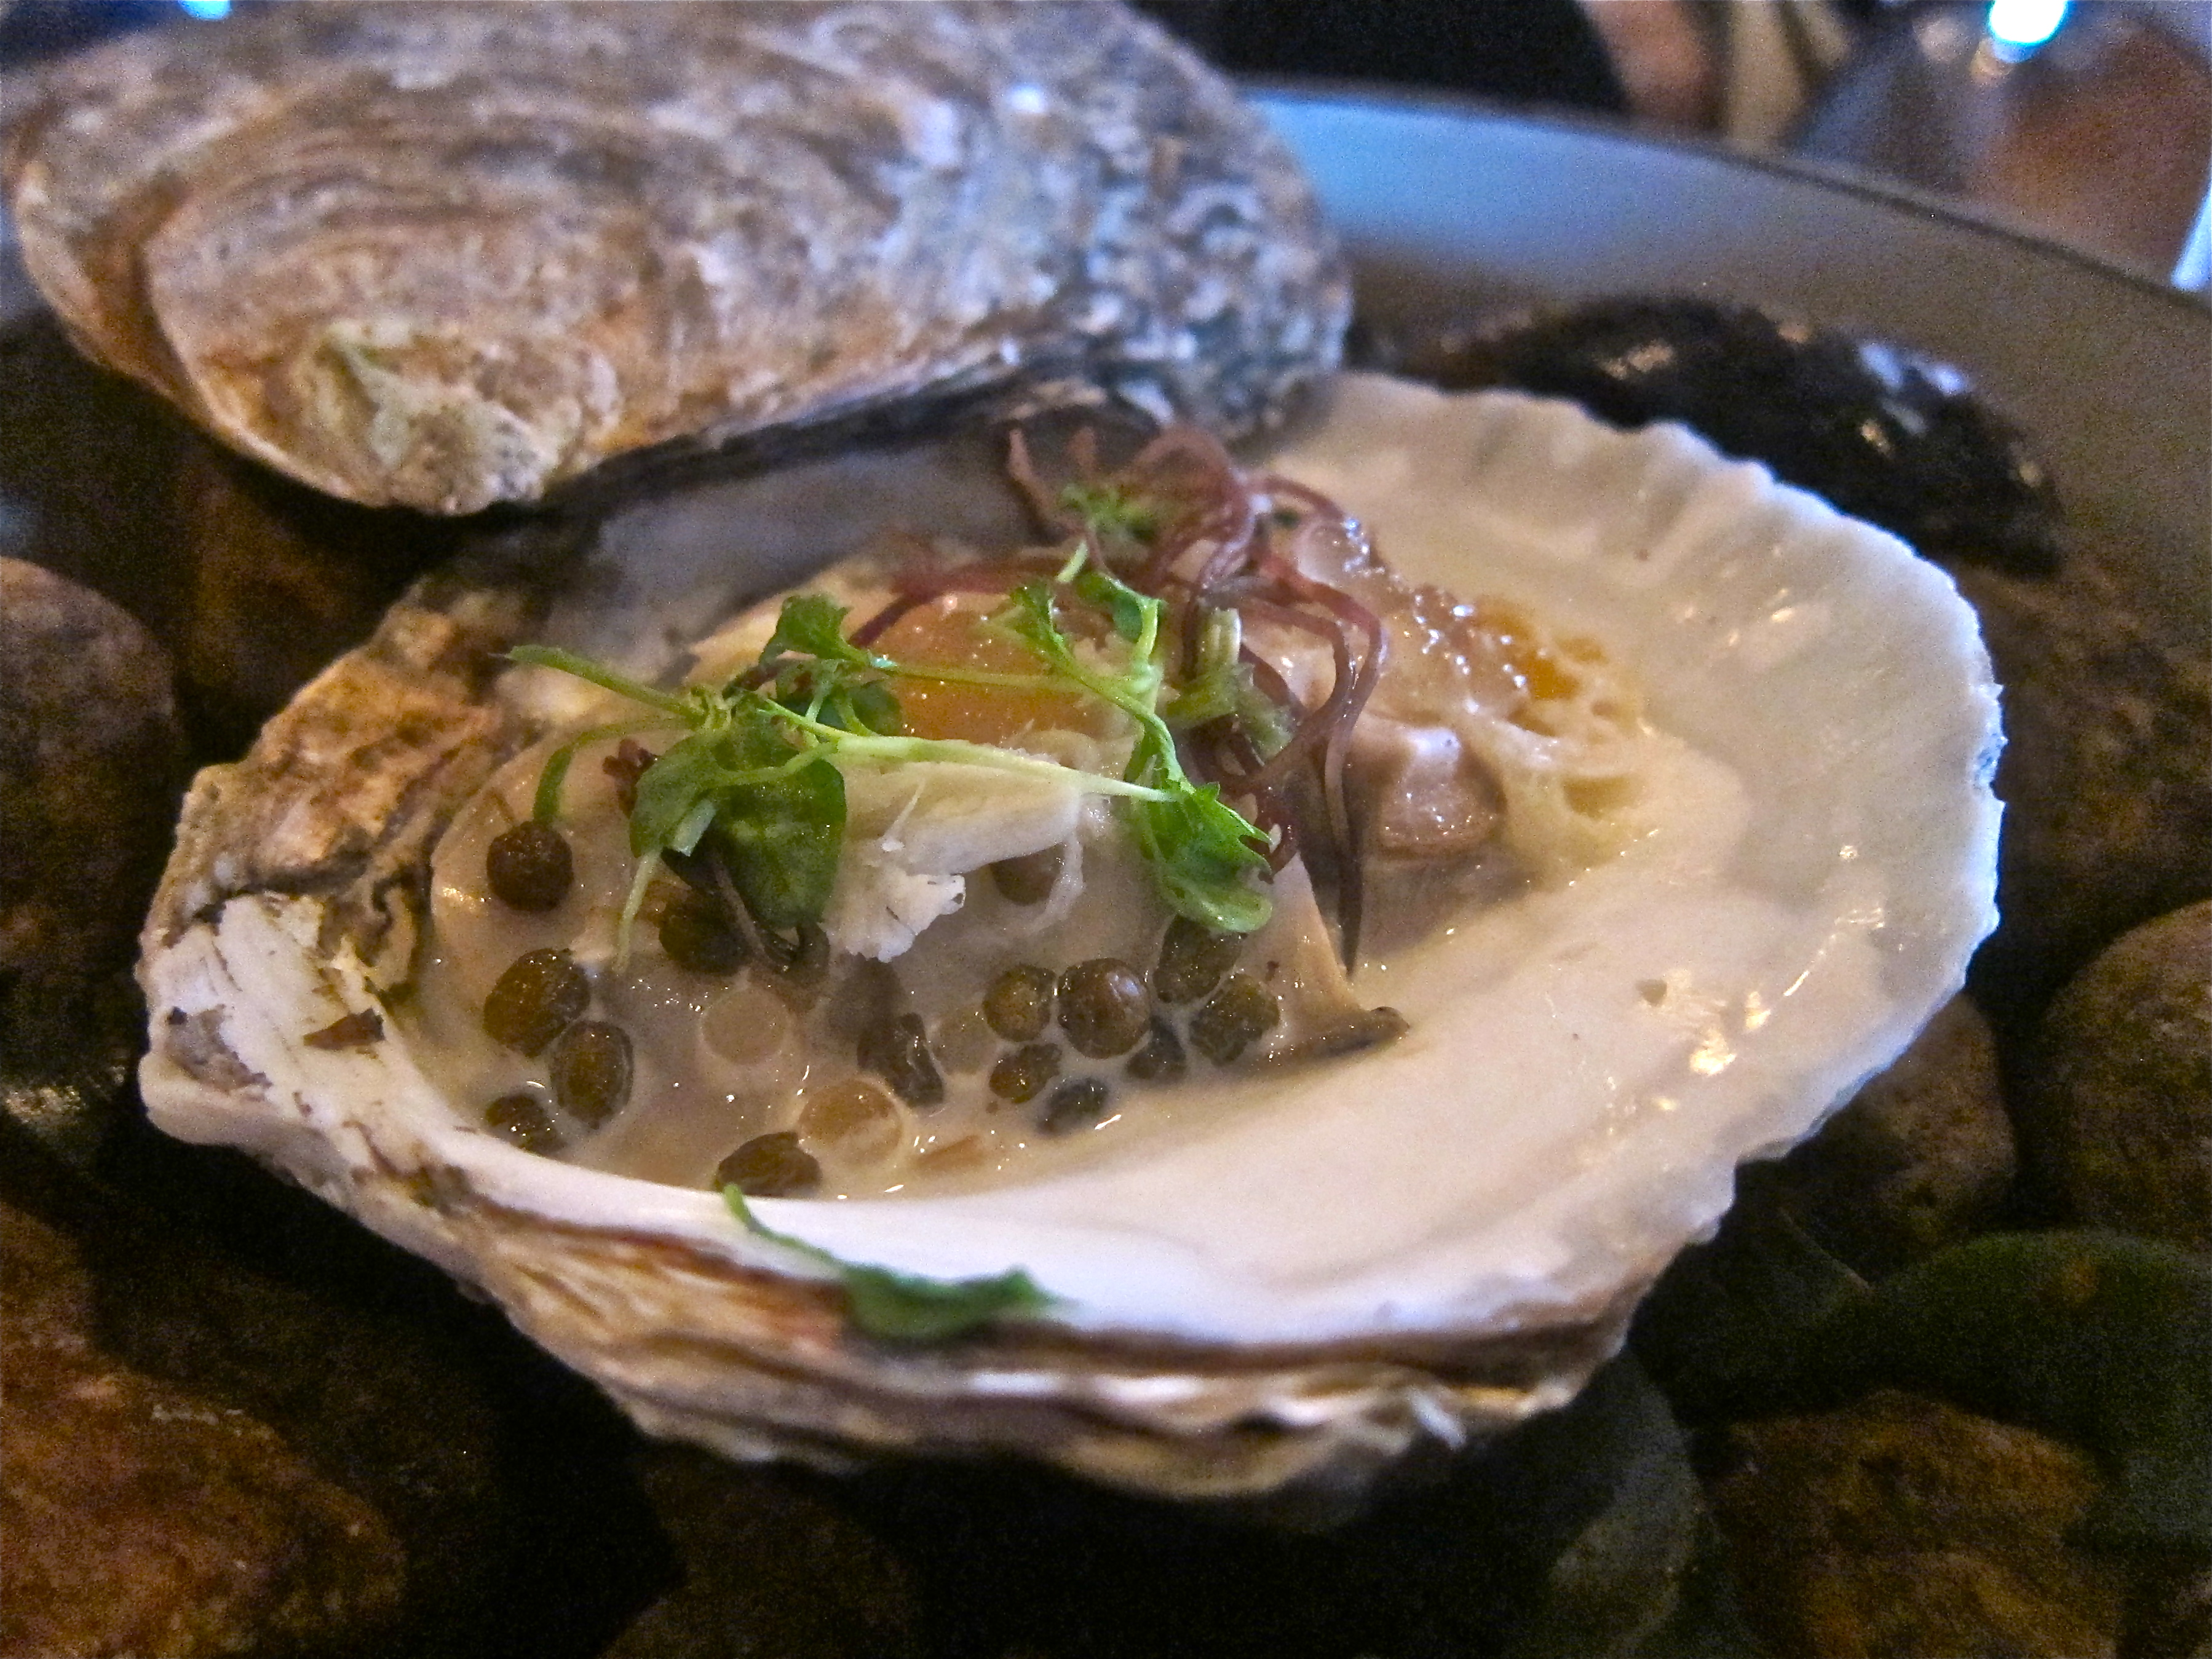 oyster personals Most of what i wrote about myself in the nerve personals was untrue i won't say  that  i am athletic yet like oysters and know how to eat them.